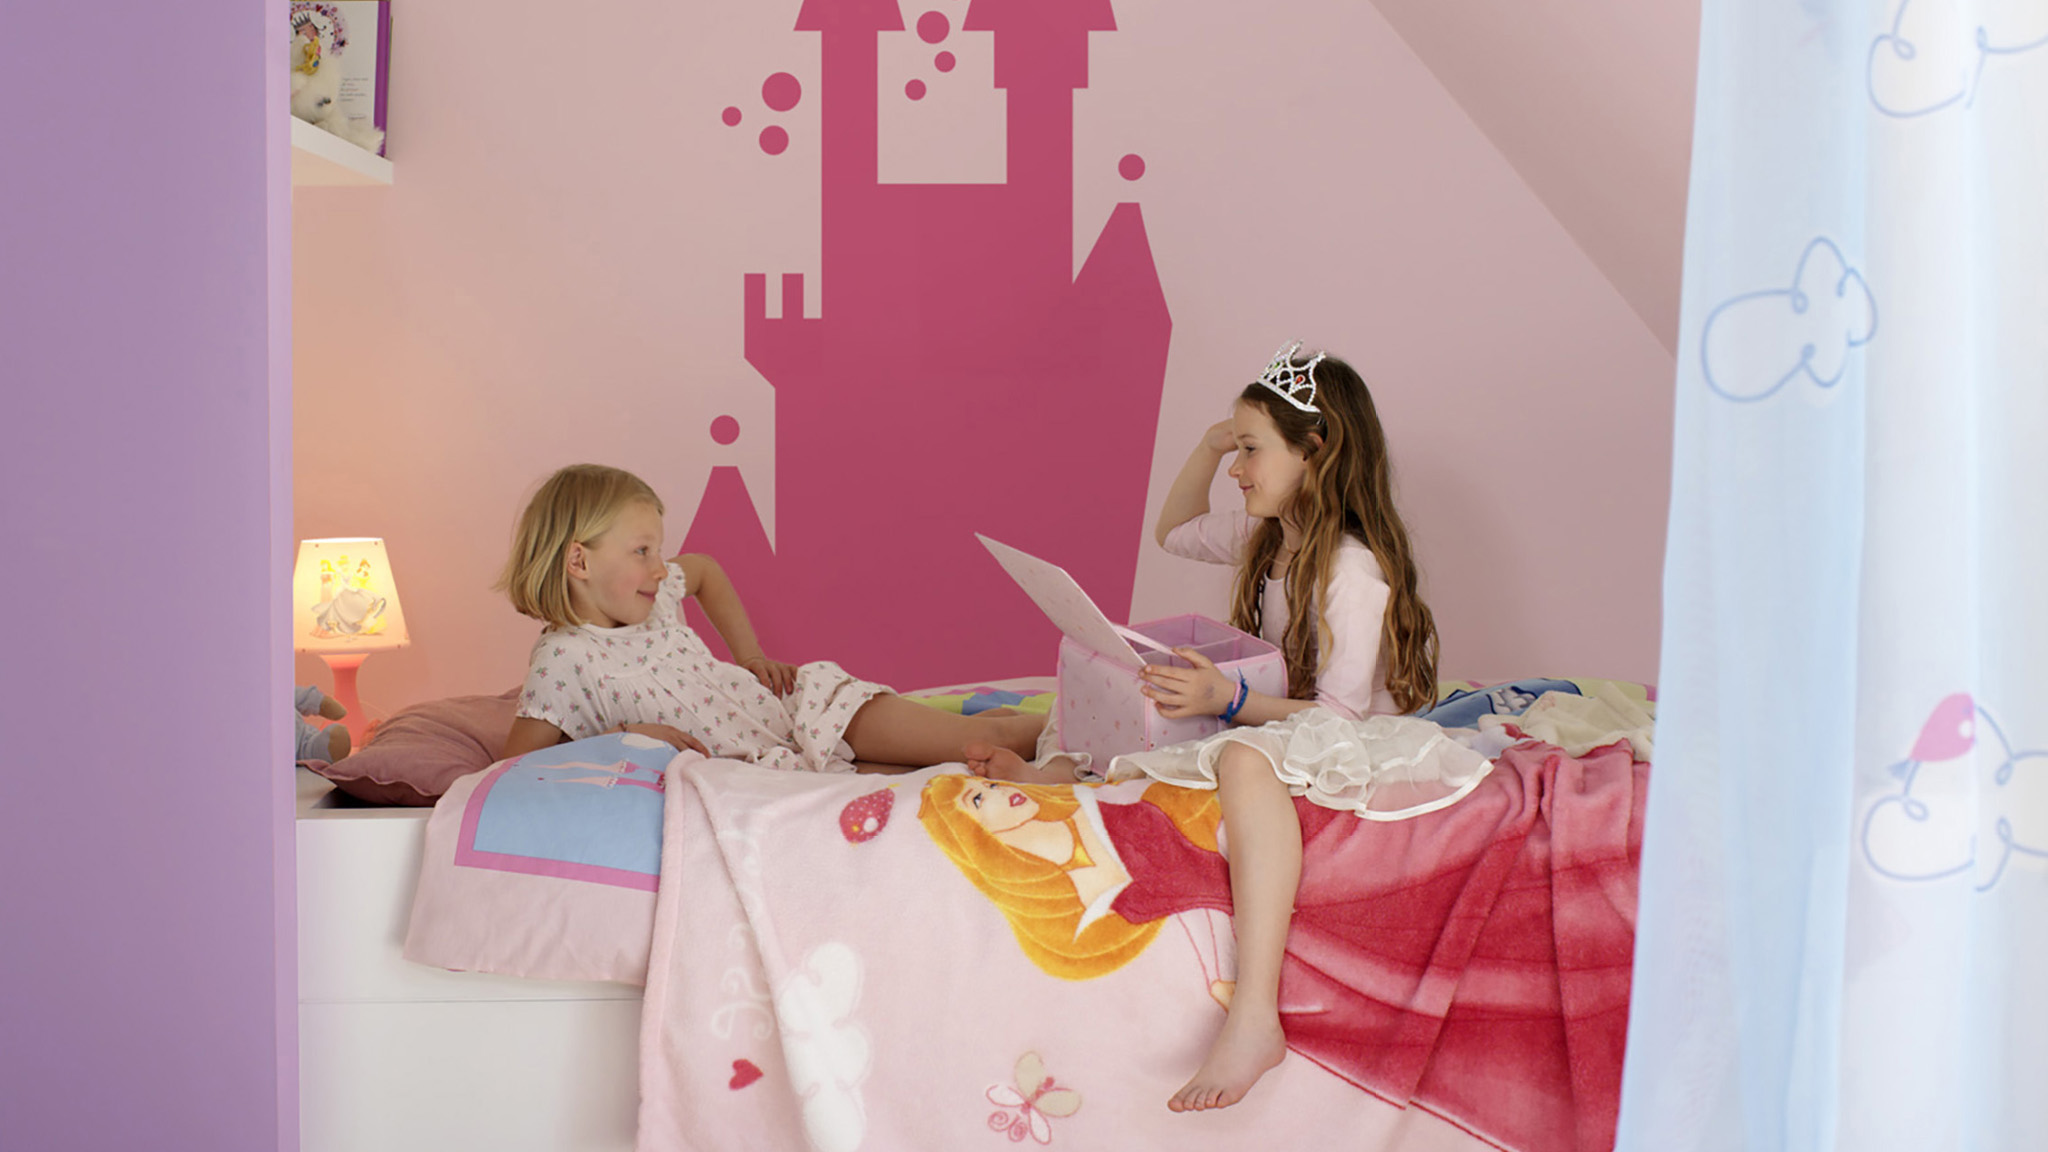 Give children a sense of stability after moving house by painting their new bedroom the same colour as their old room.